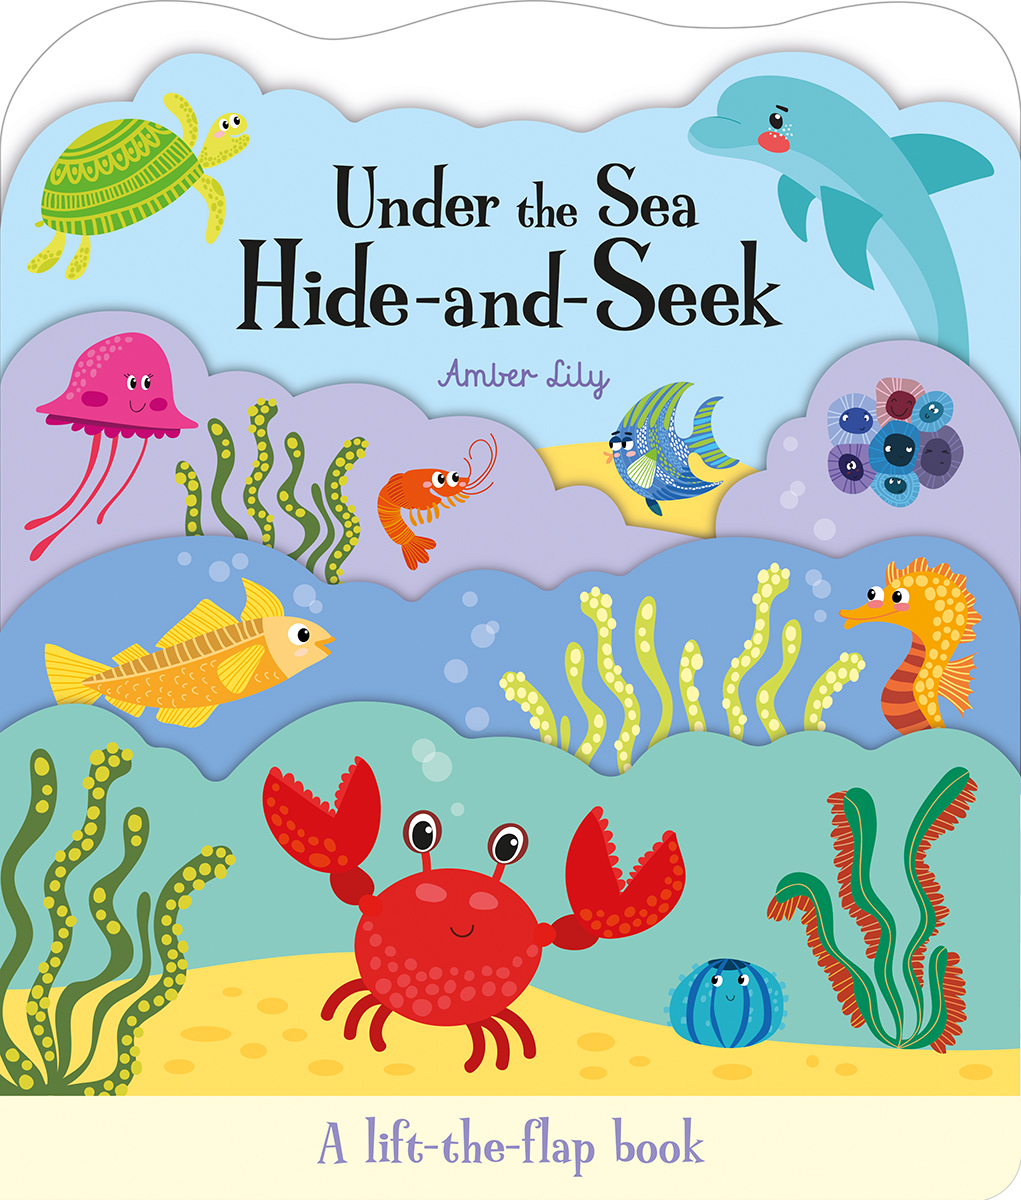 UNDER THE SEA HIDE-AND-SEEK